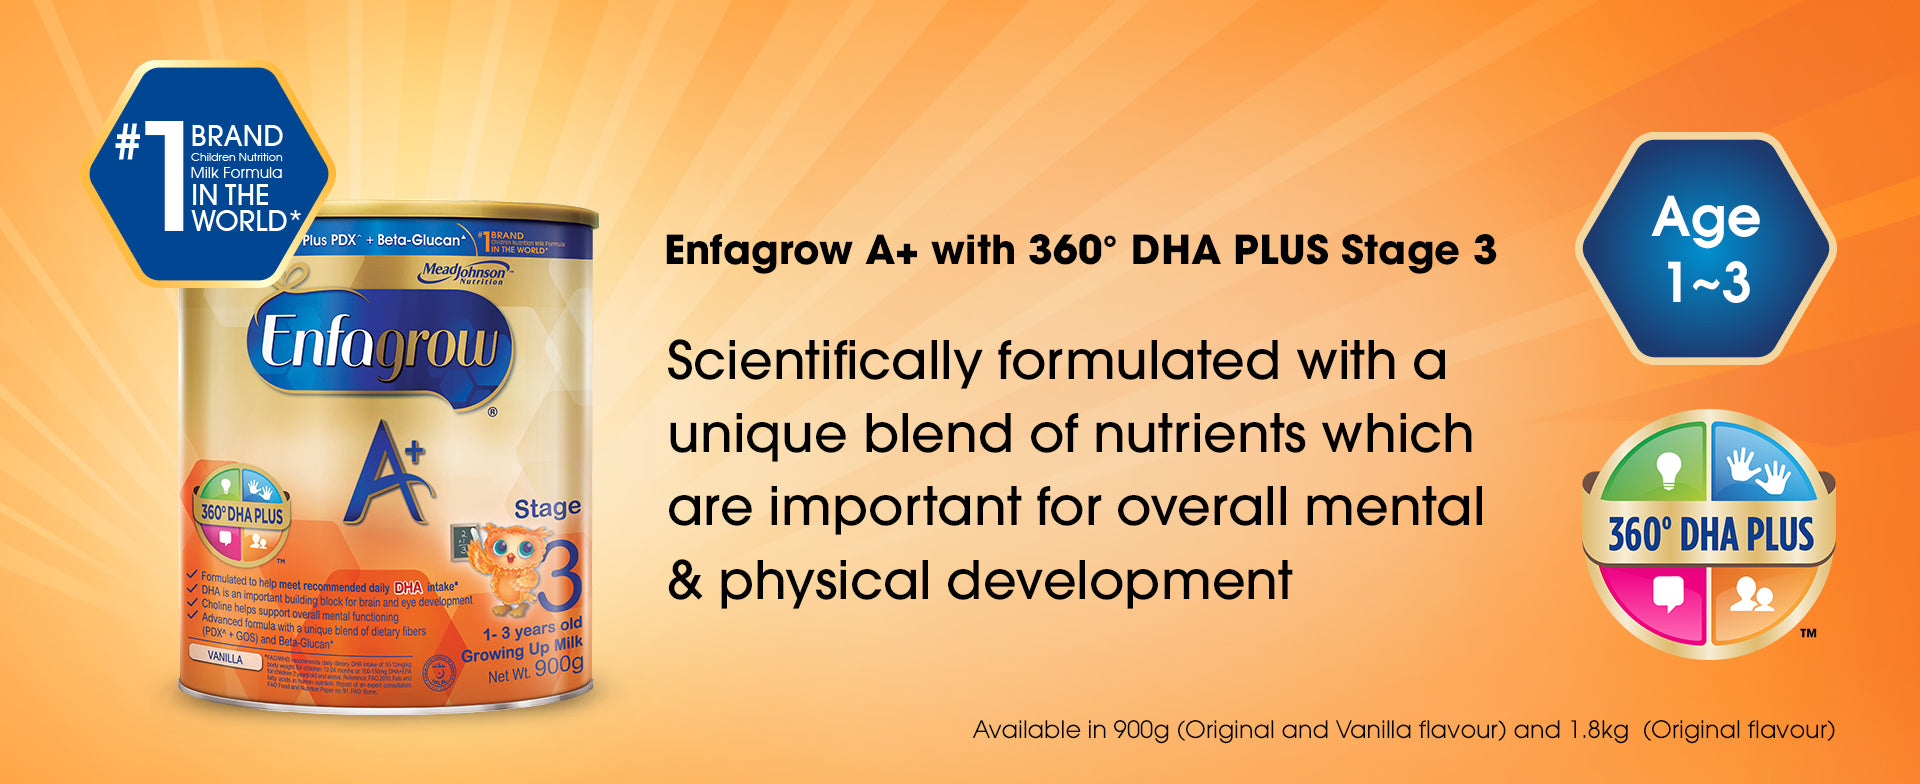 Enfagrow A+ with 360 degrees DHA PLUS Stage 3 - a product banner image with basic information